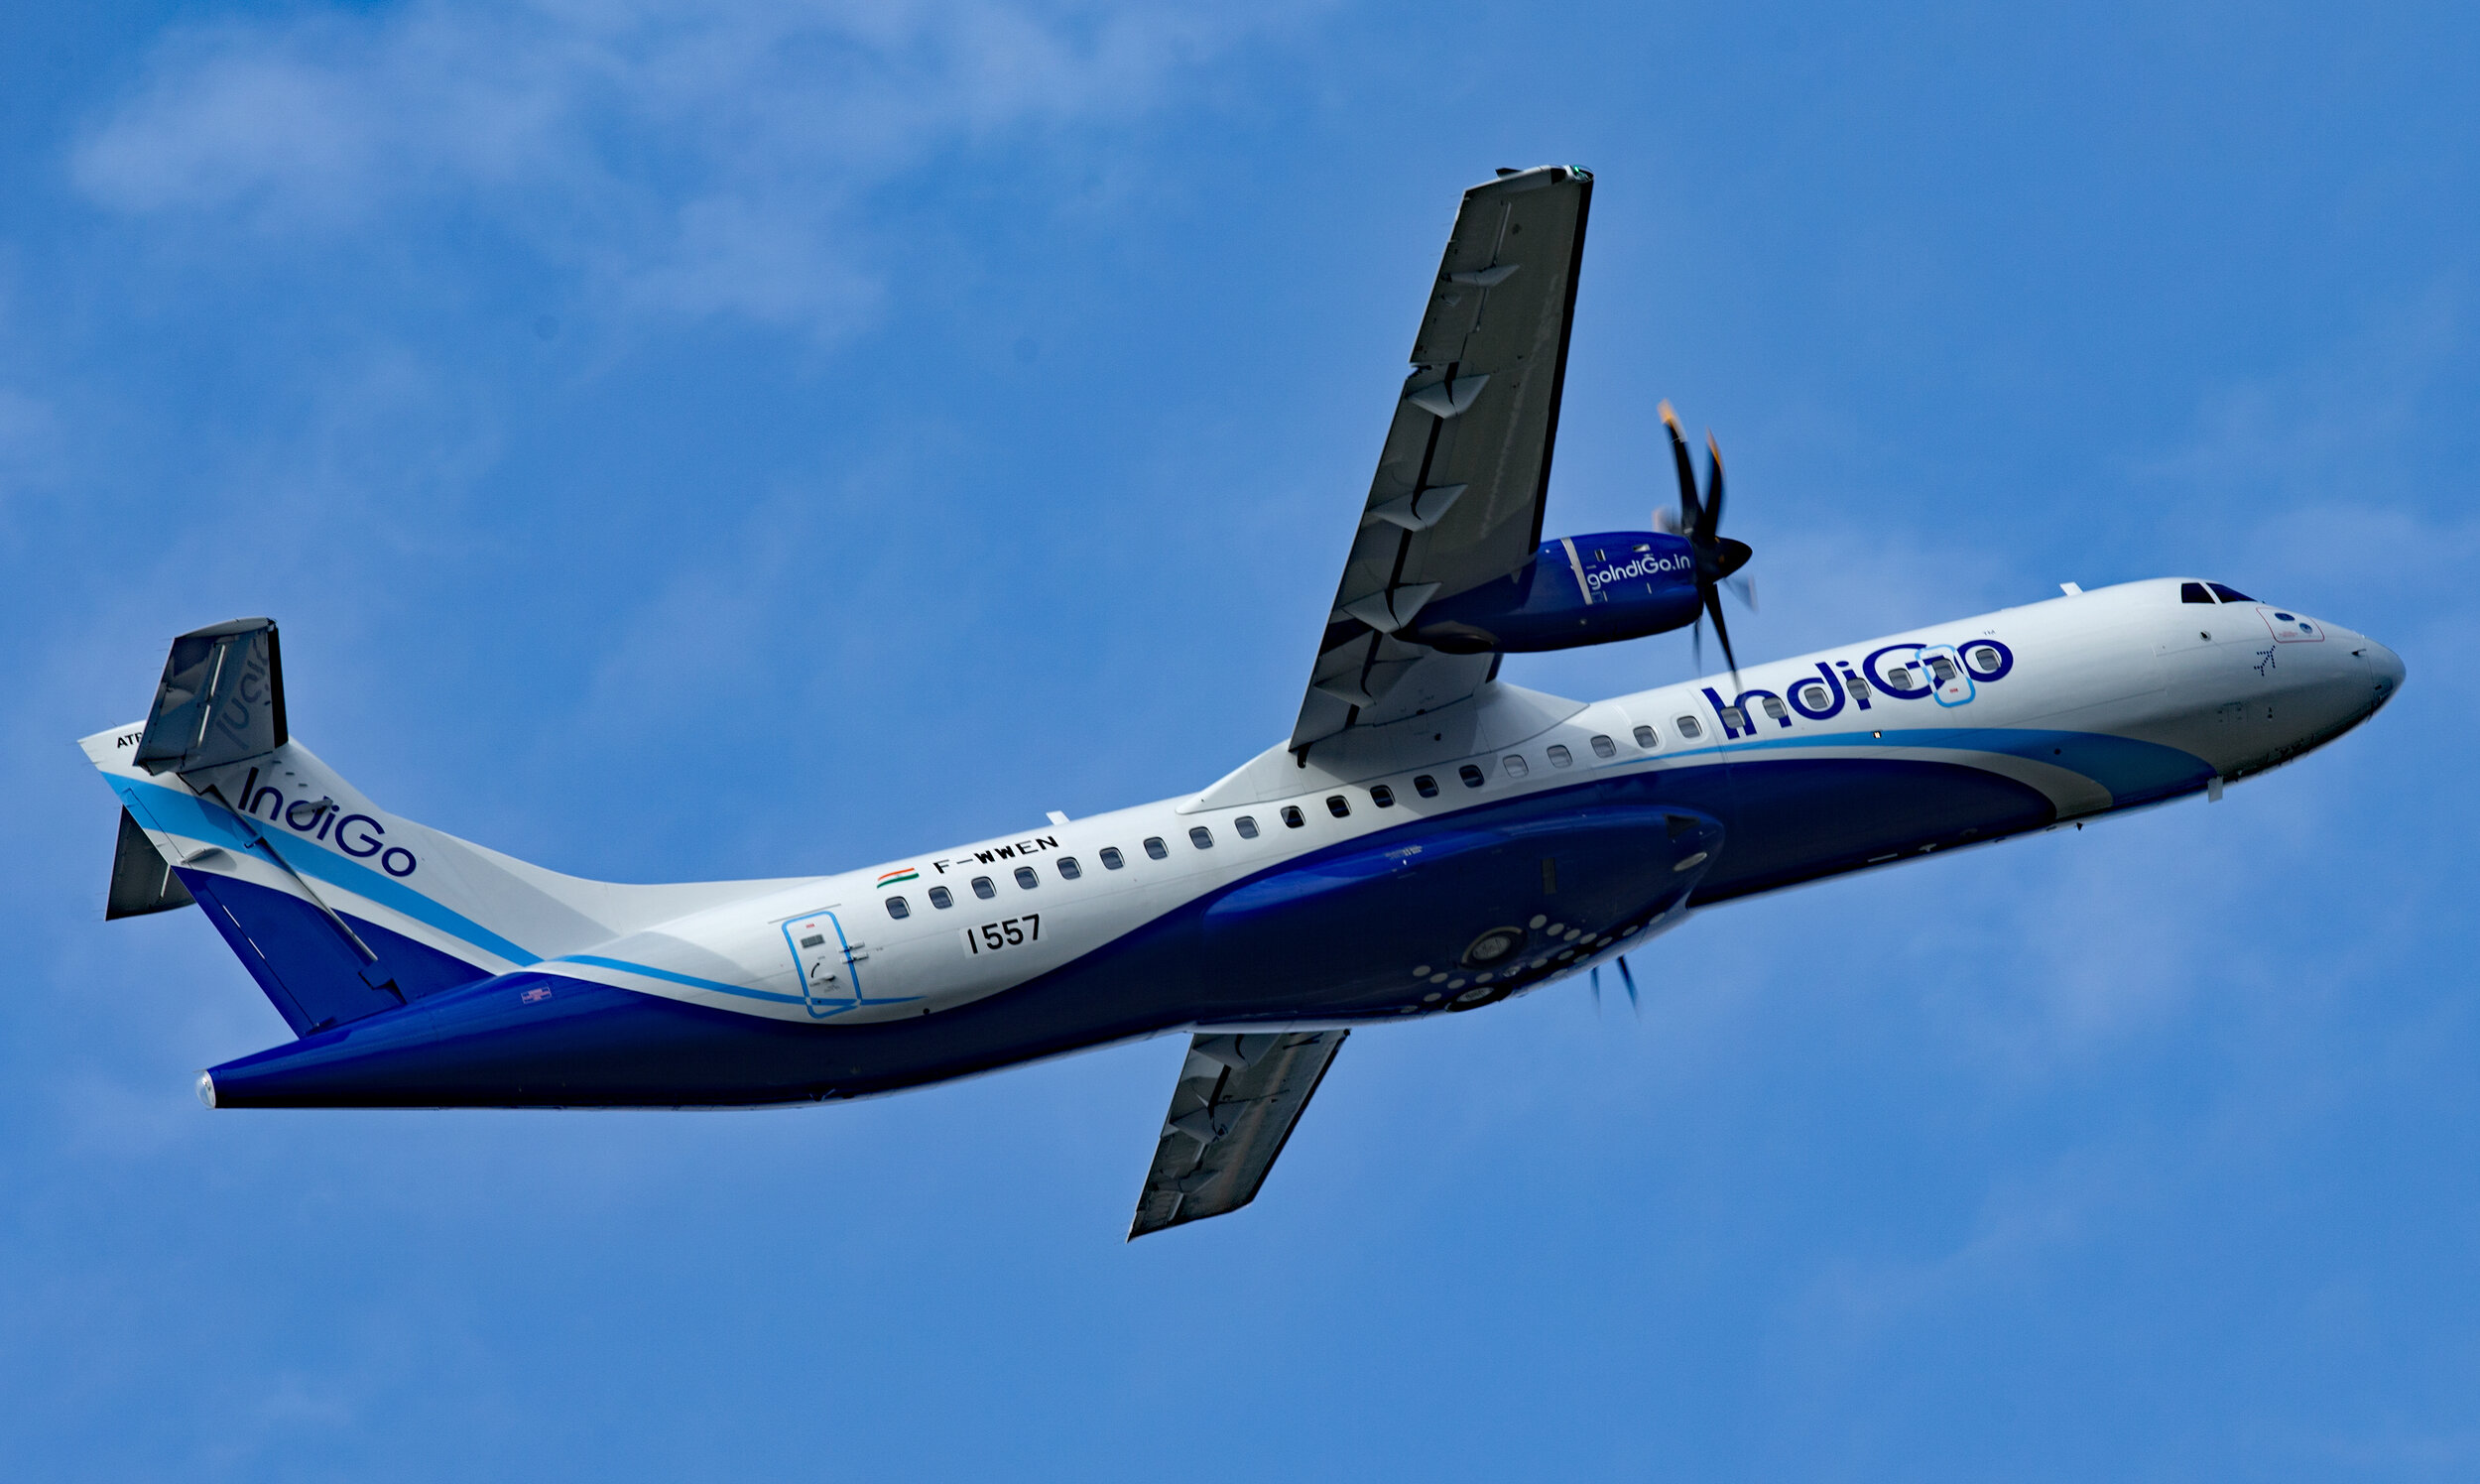 IndiGo ATR 72 F-WWEN / VT-IYY departing Toulouse Blagnac for a test flight on 18th September 2019. Photo: Peter Hampson.